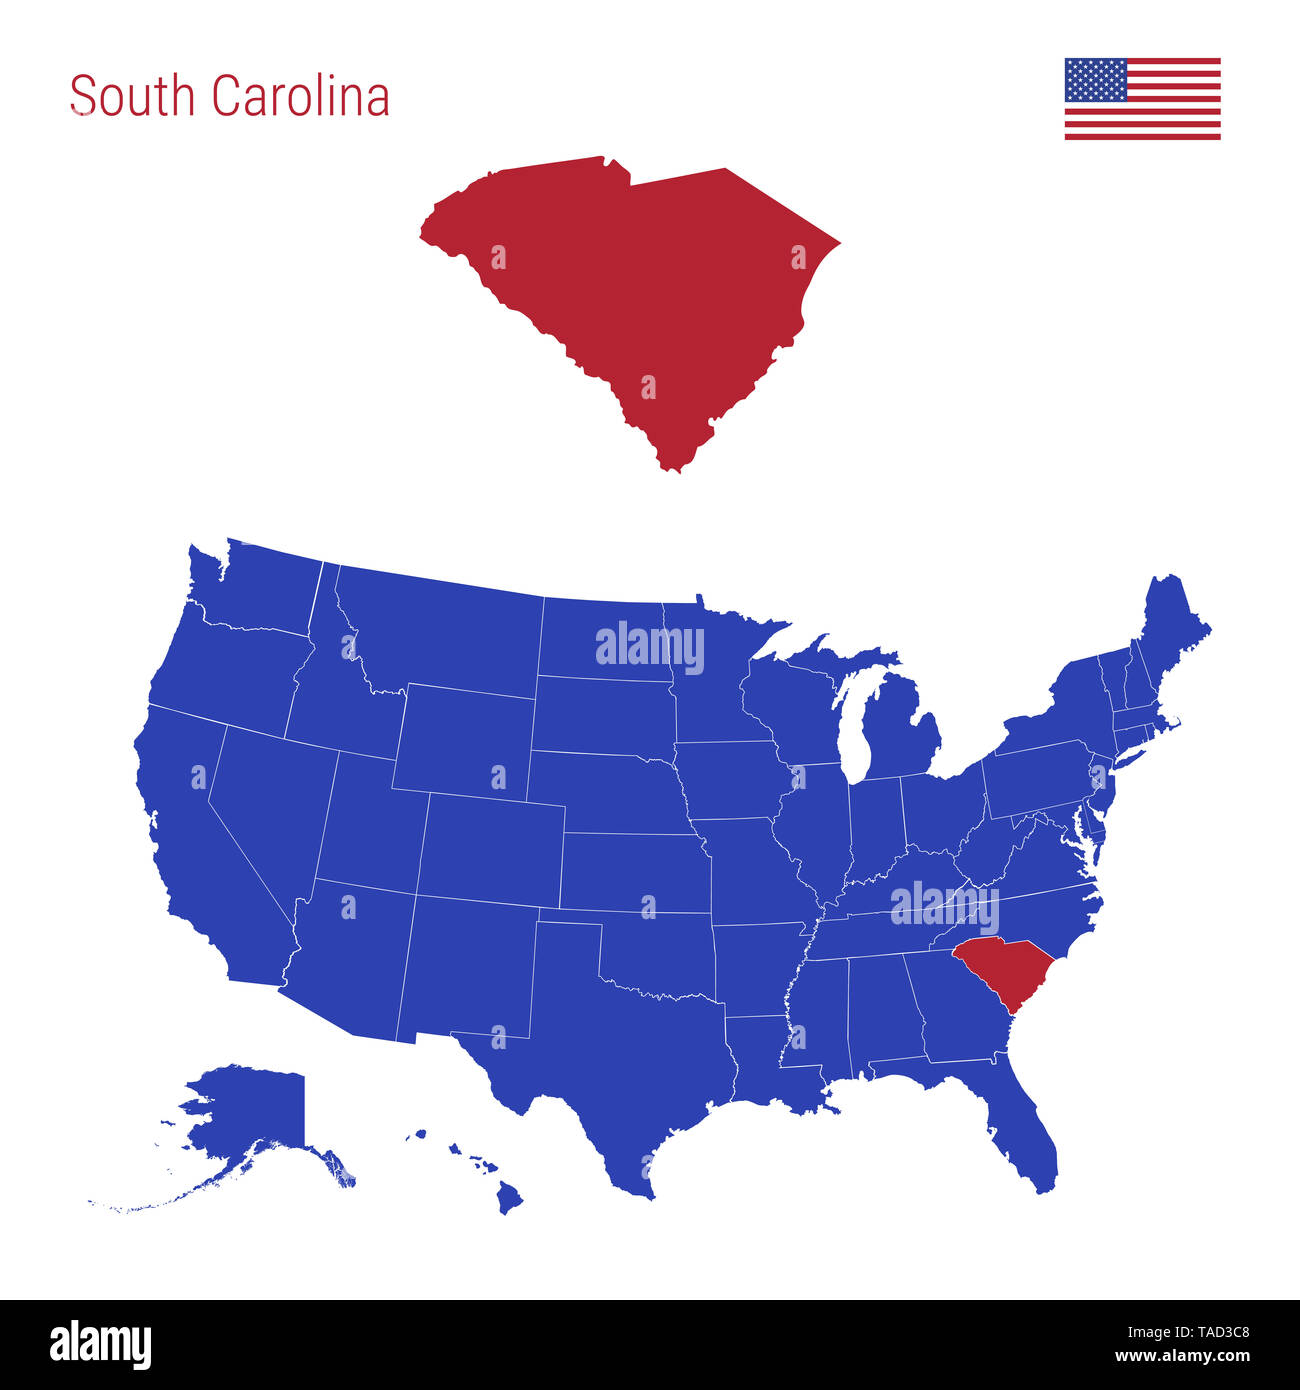 united states map south carolina The State Of South Carolina Is Highlighted In Red Blue Map Of The